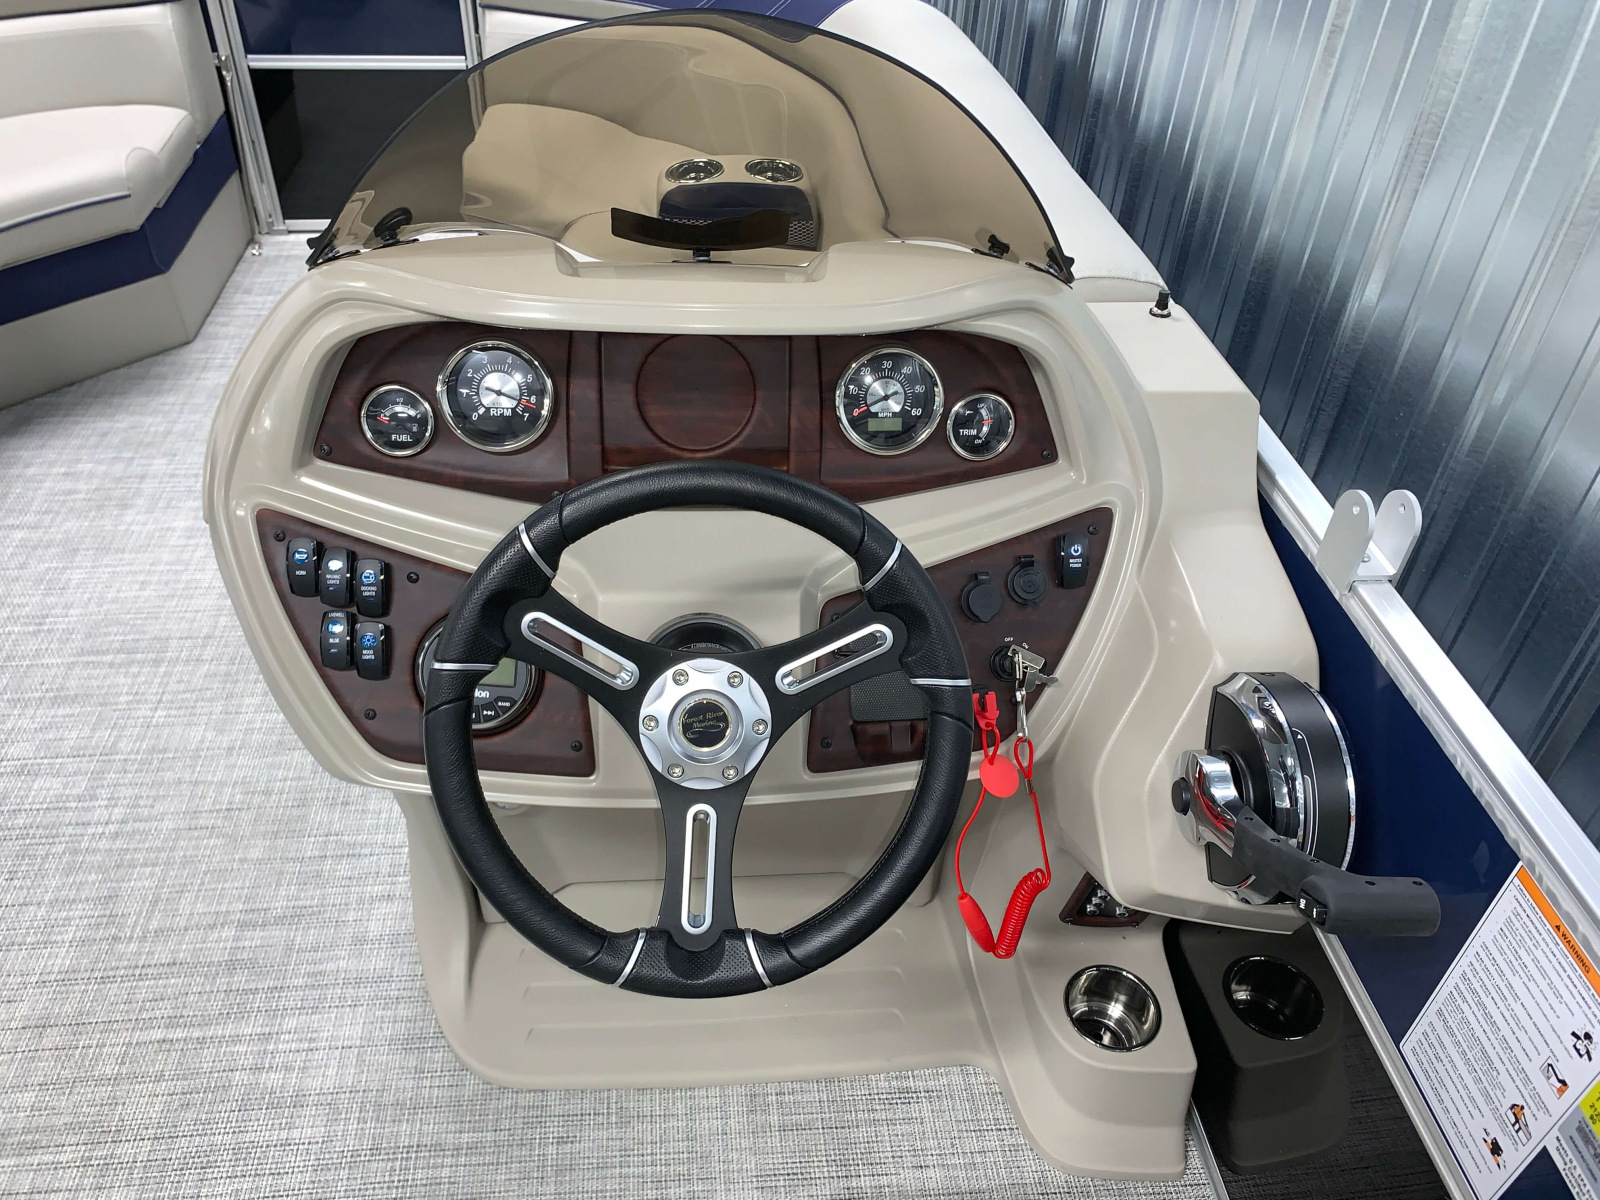 Helm of the 2021 Berkshire 20CL LE Pontoon Boat